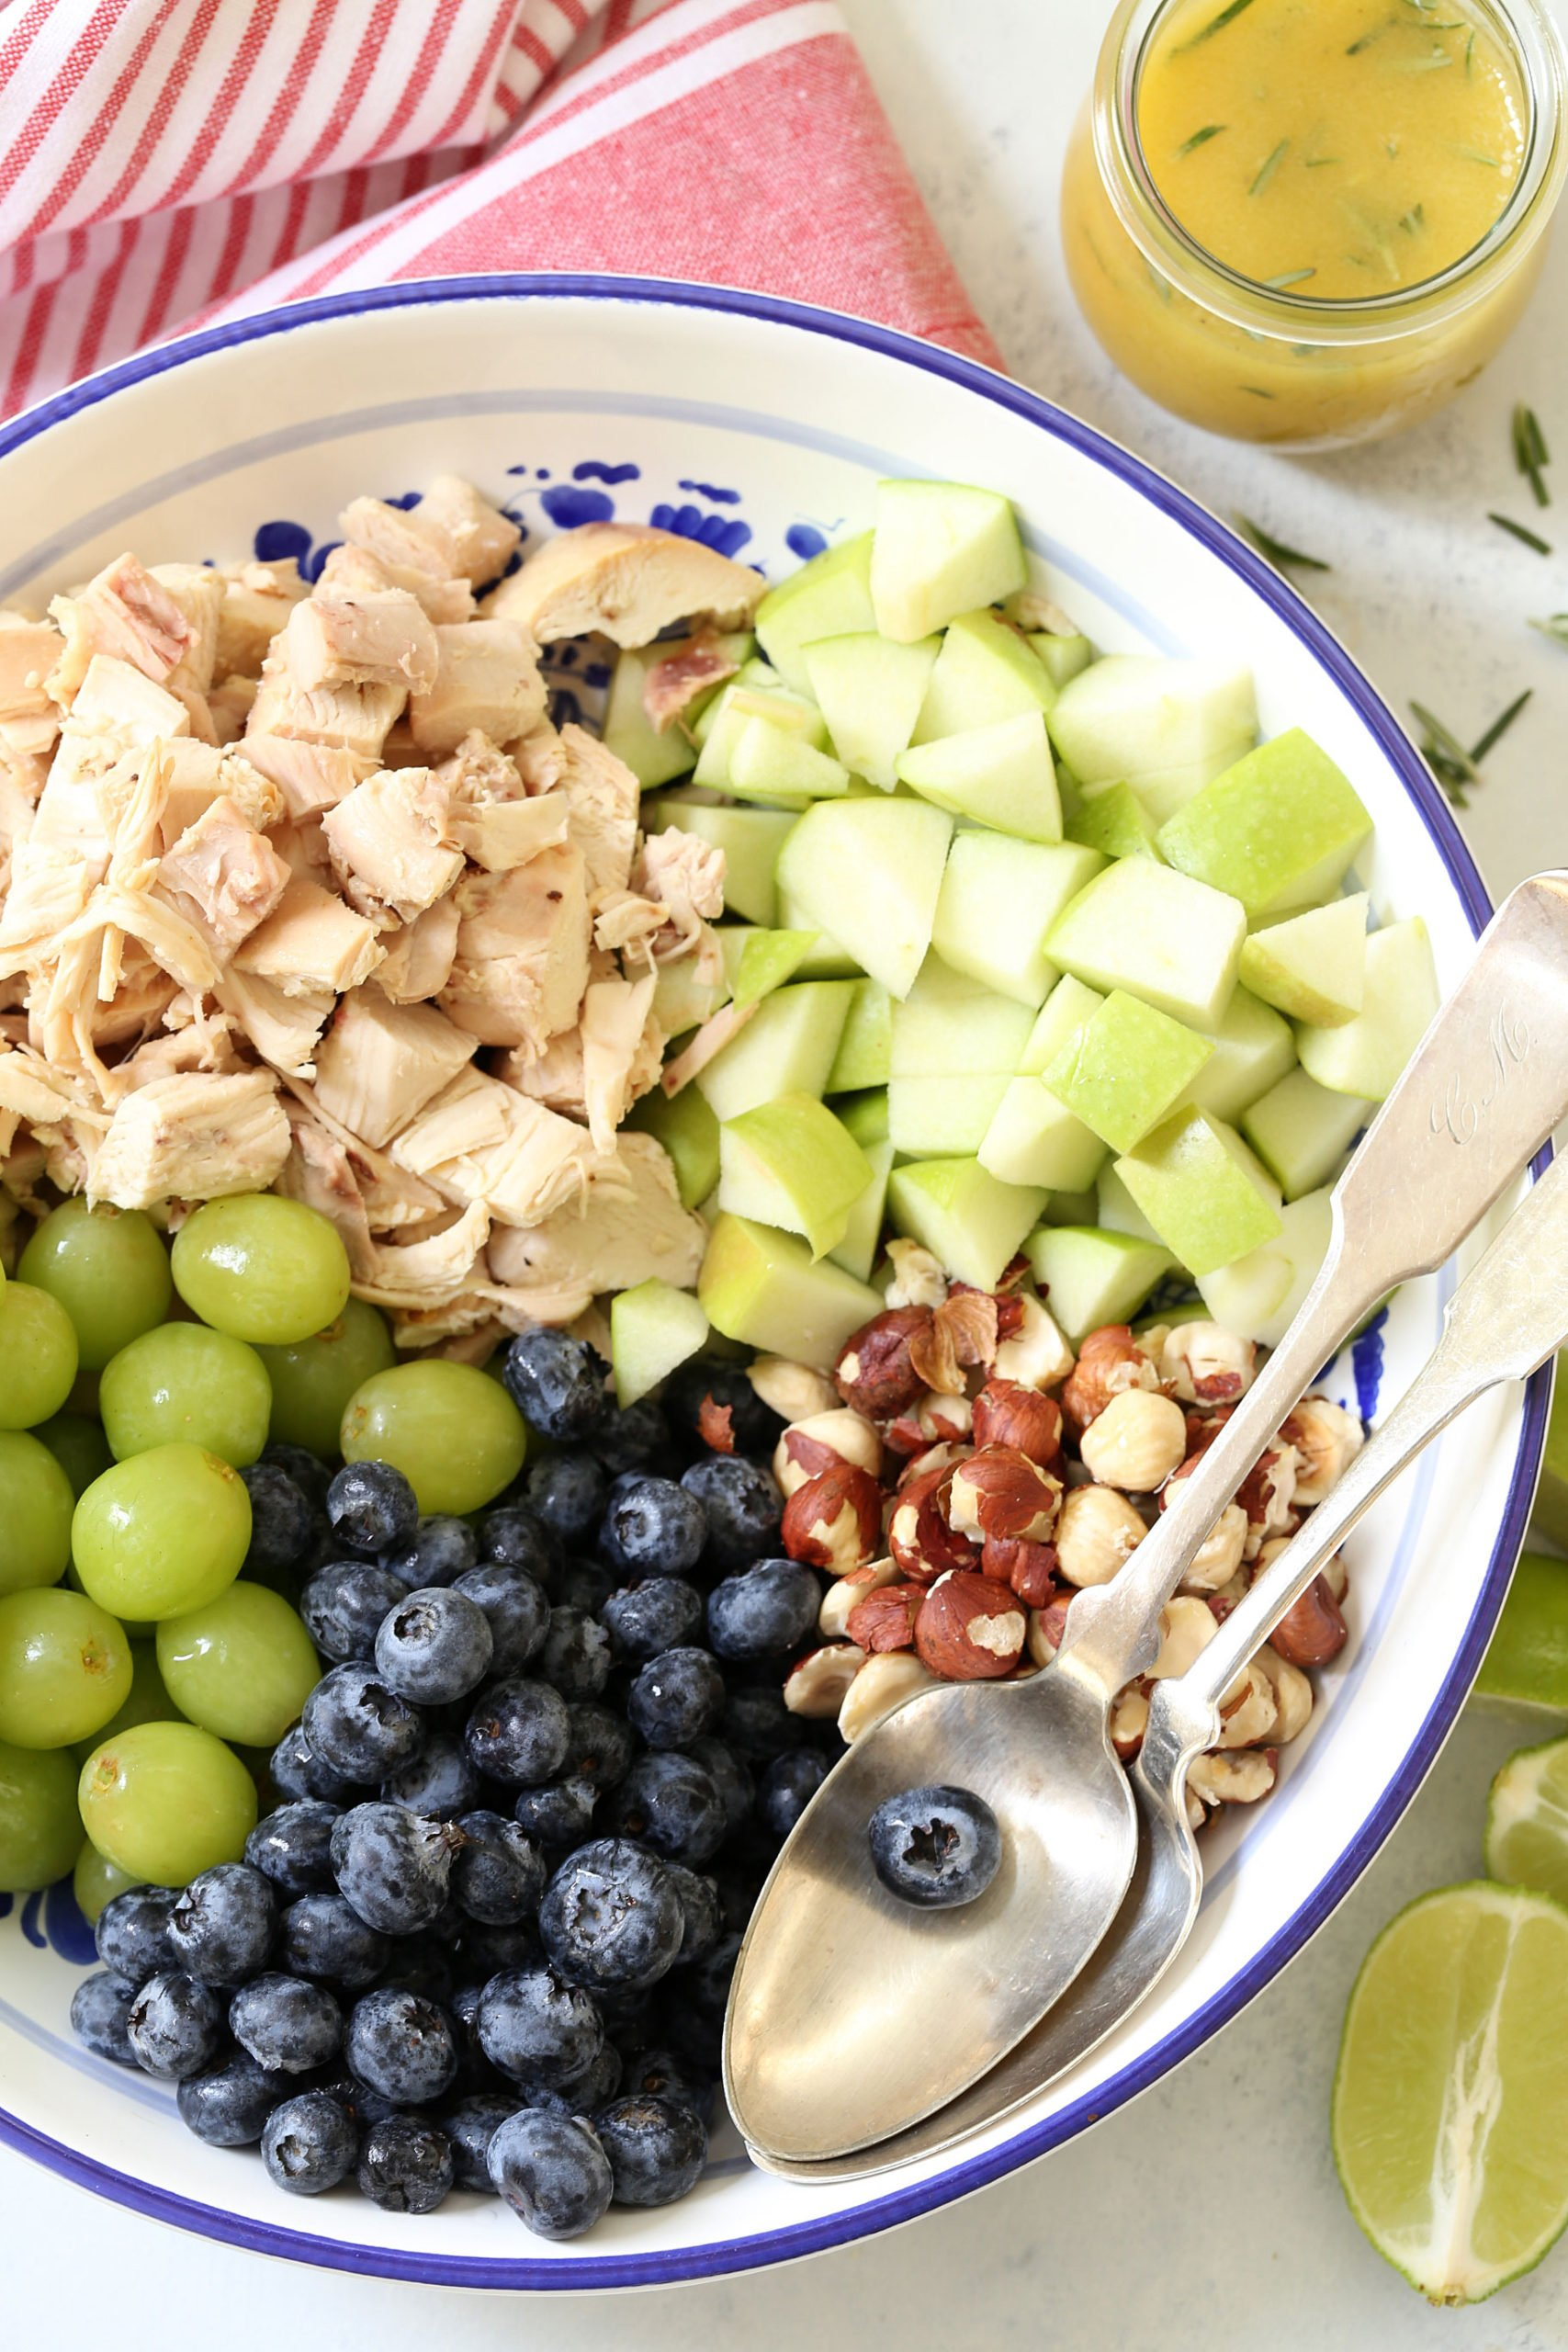 This Blueberry Chicken Salad is loaded with chopped chicken, blueberries, grapes, apple and hazelnuts all tossed in a delicious rosemary lime vinaigrette